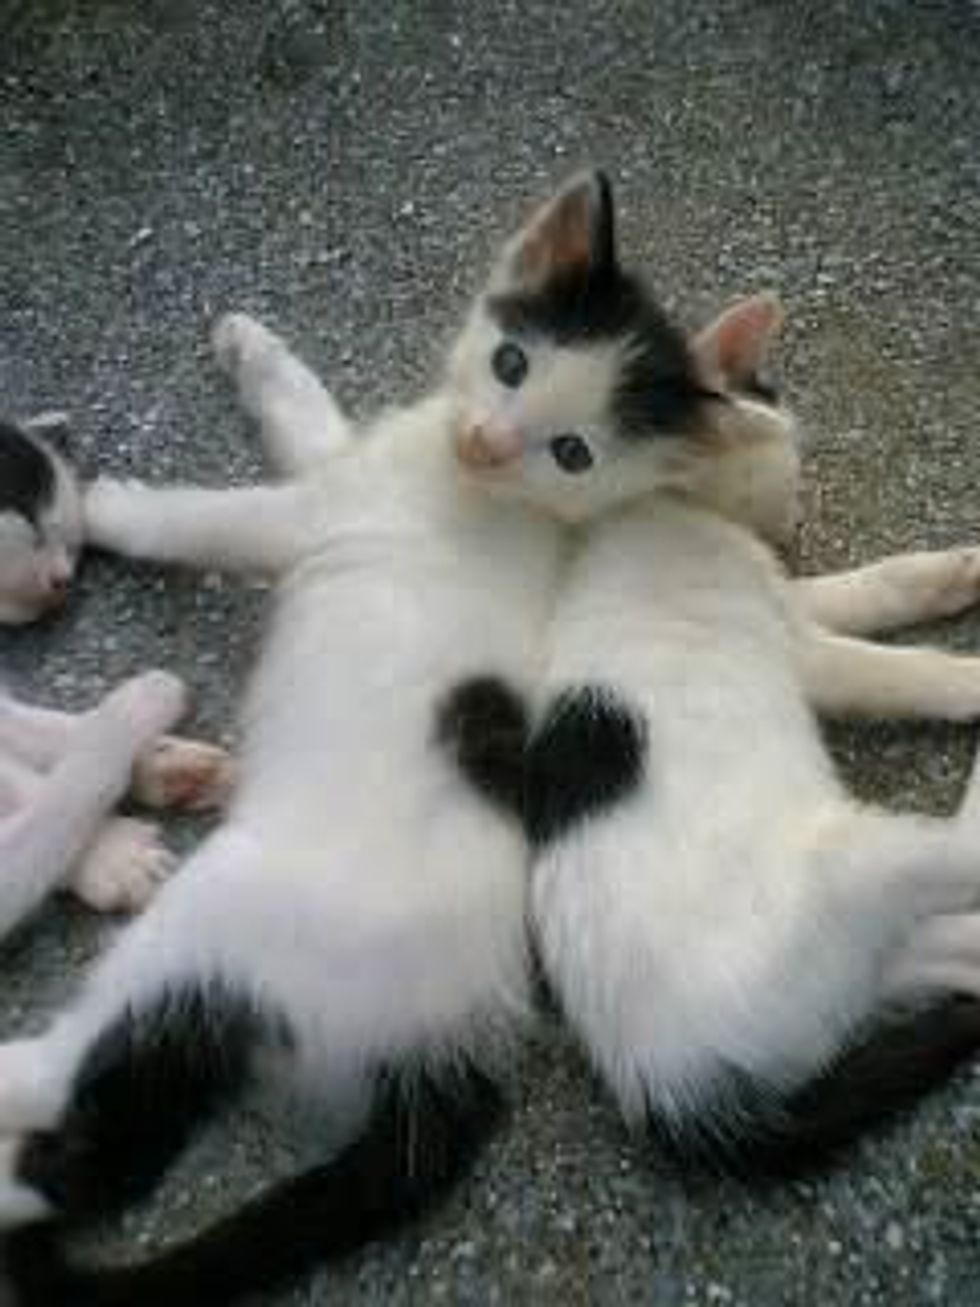 Valentines Kittens with Heart Shaped Markings